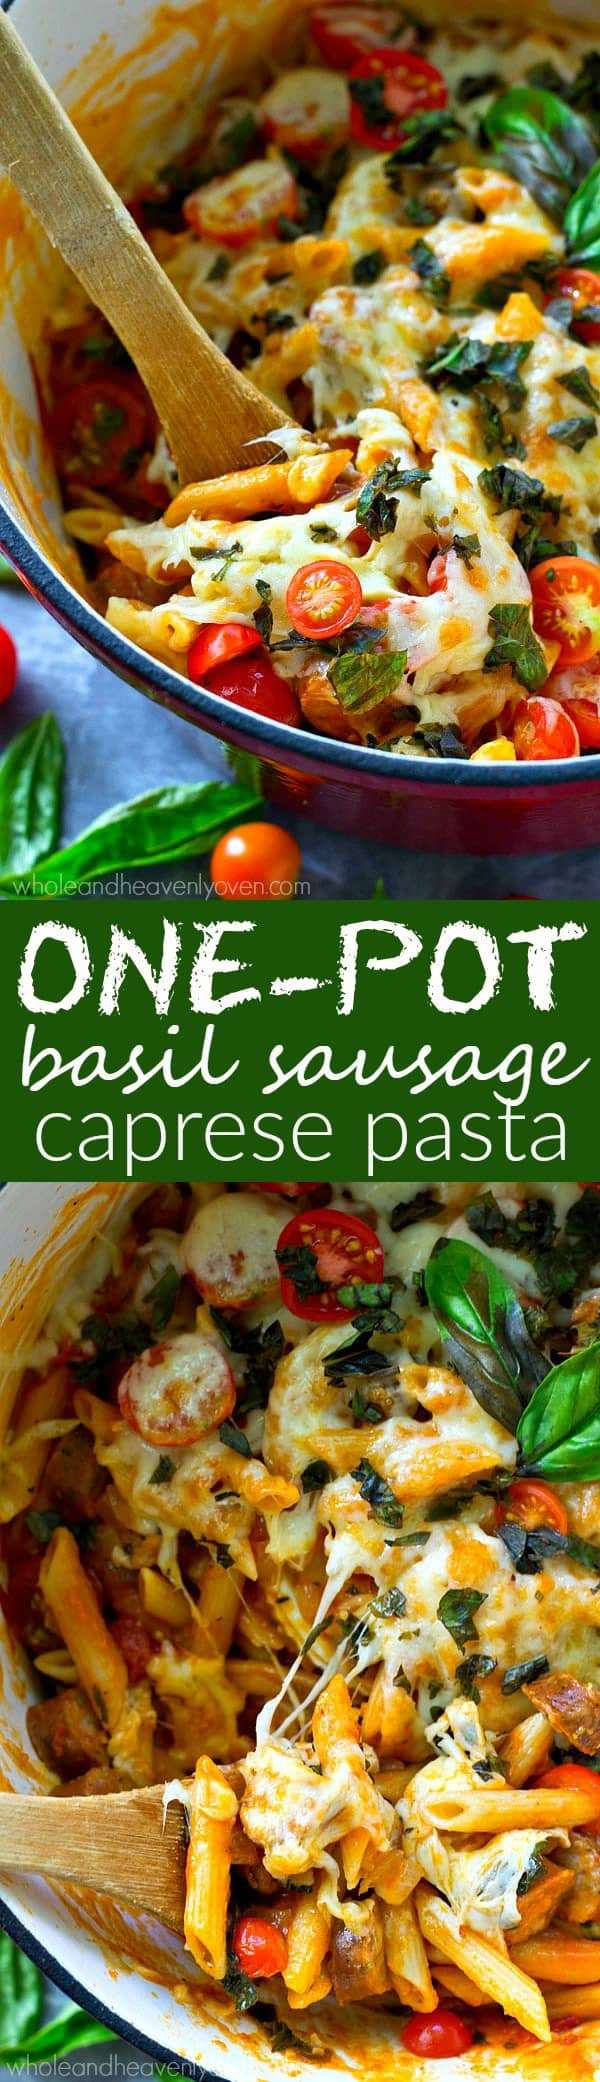 One pot, thirty minutes, and only a handful of ingredients is all you're going to need to make this cozy caprese pasta! --- An entire meal-in-one for those weeknights when you don't feel like cooking!